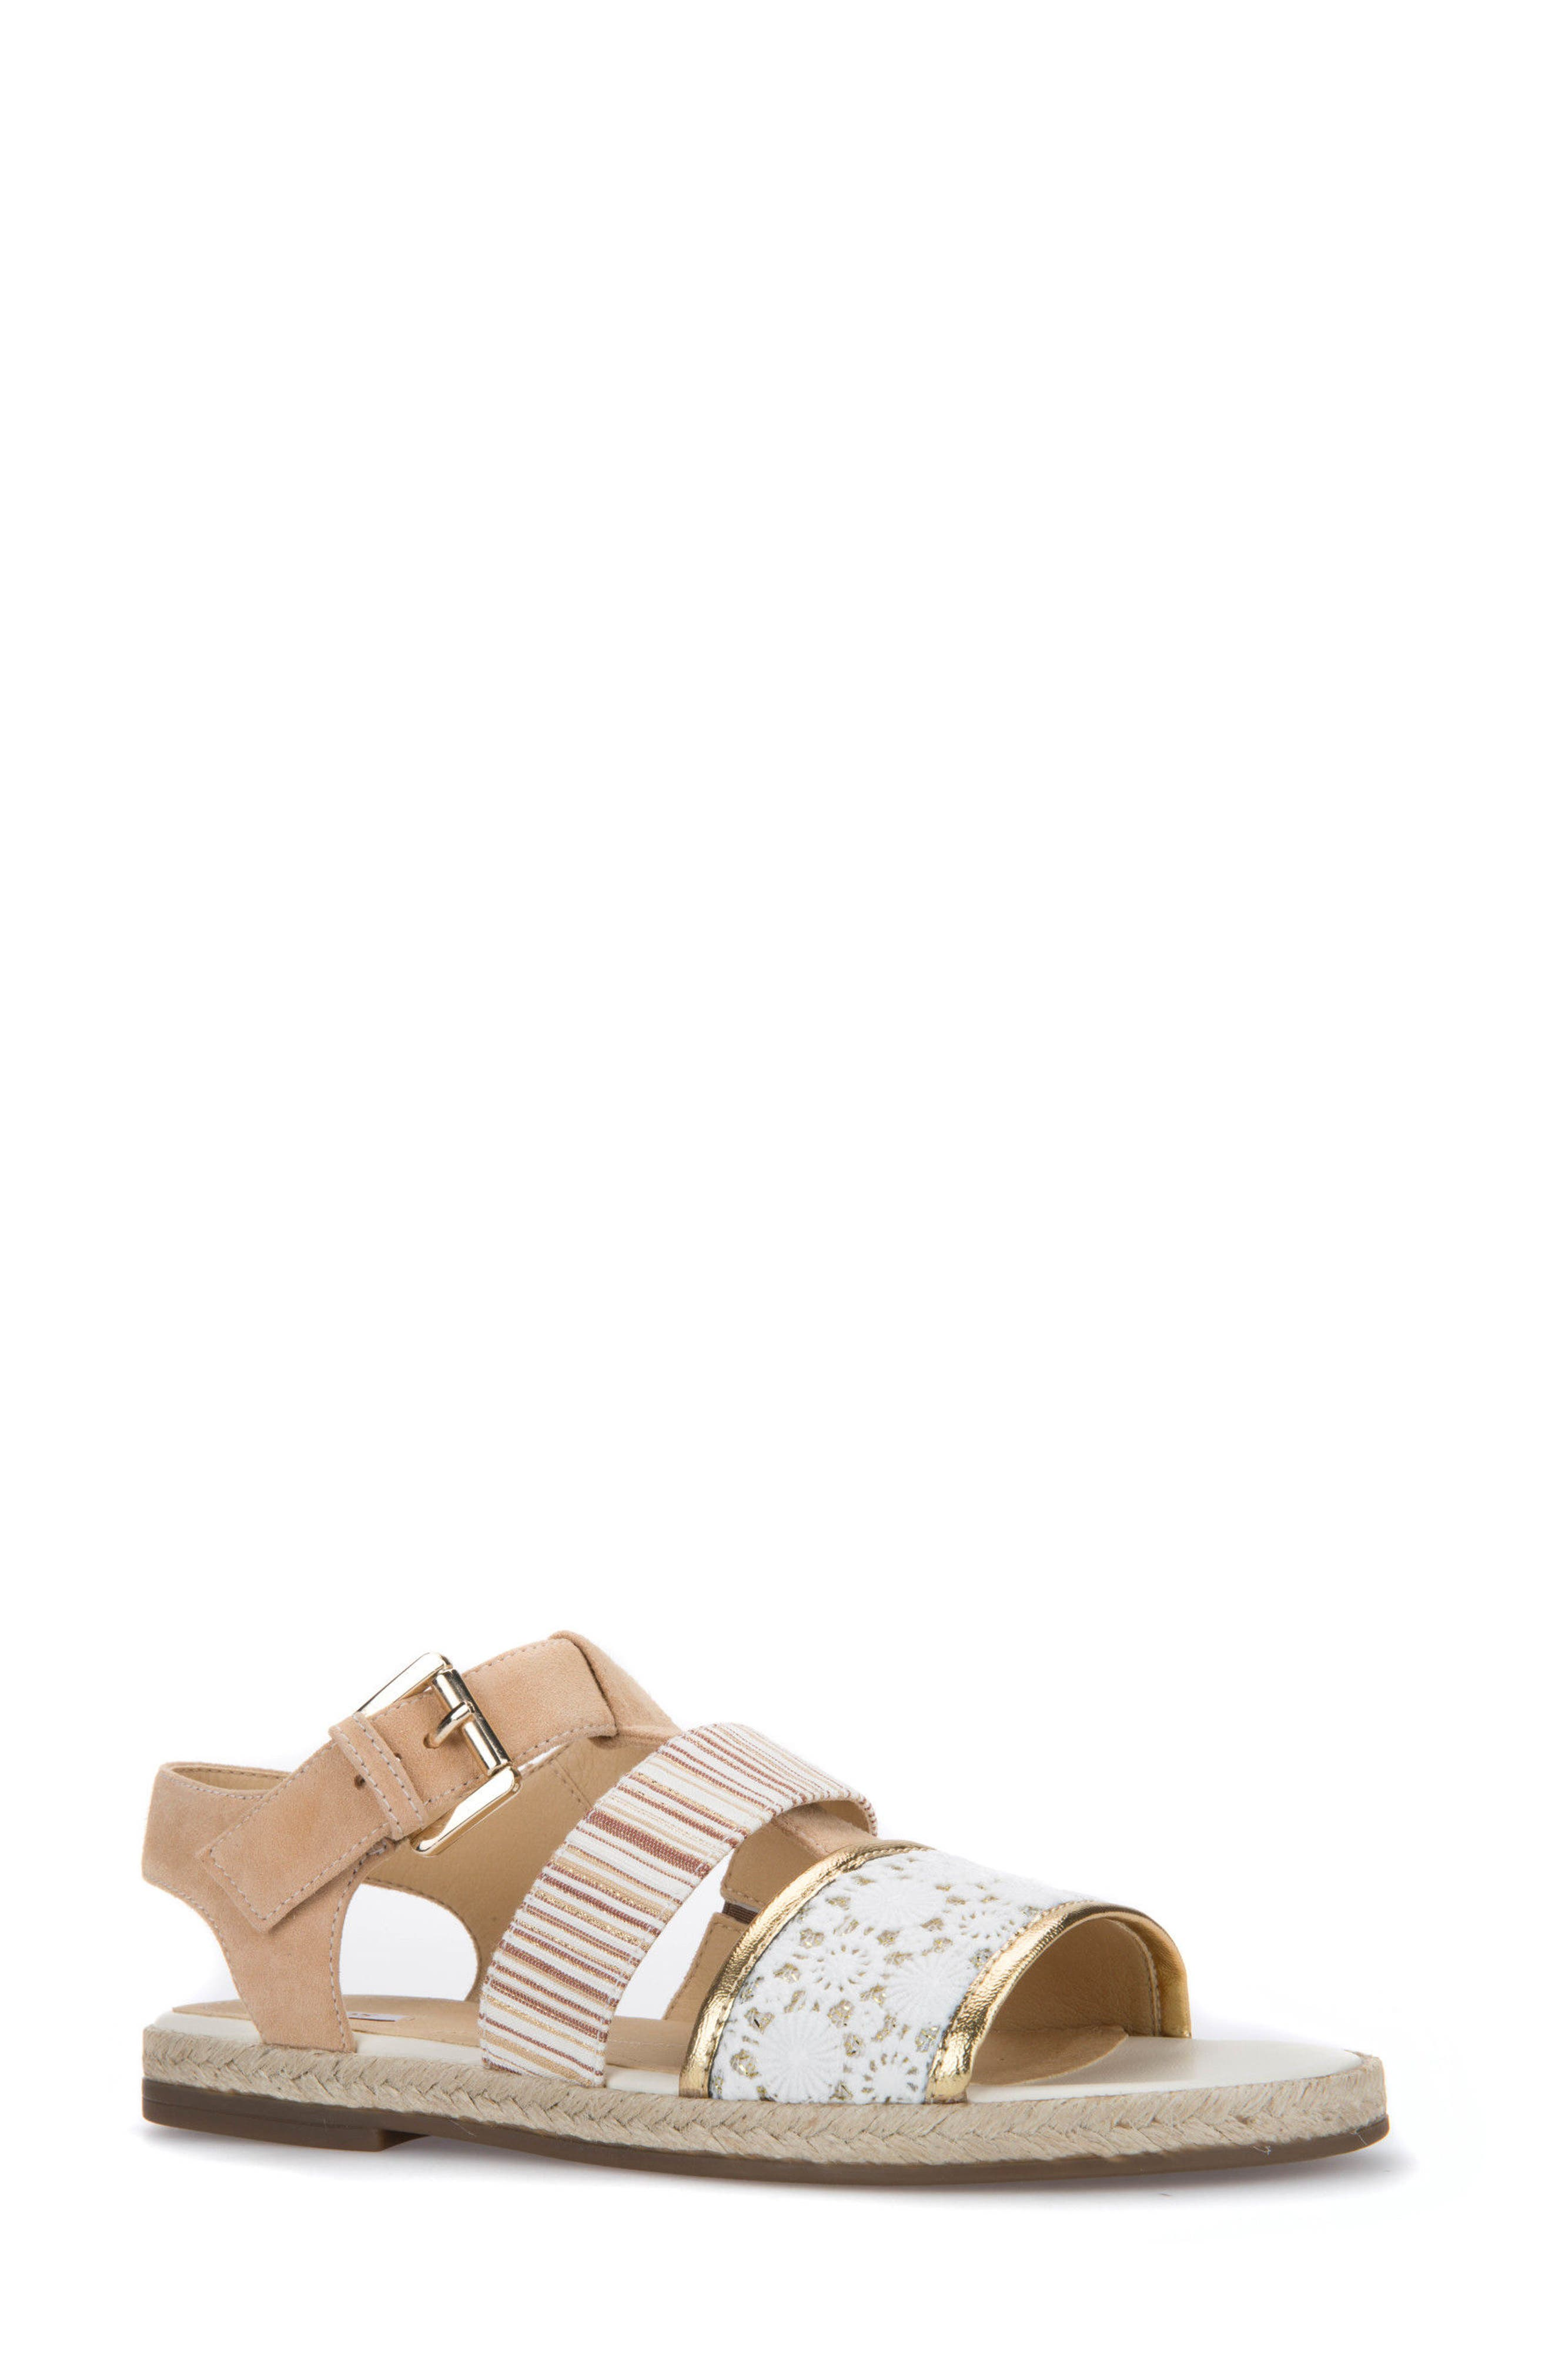 Kolleen Sandal,                         Main,                         color, Natural/ Off White